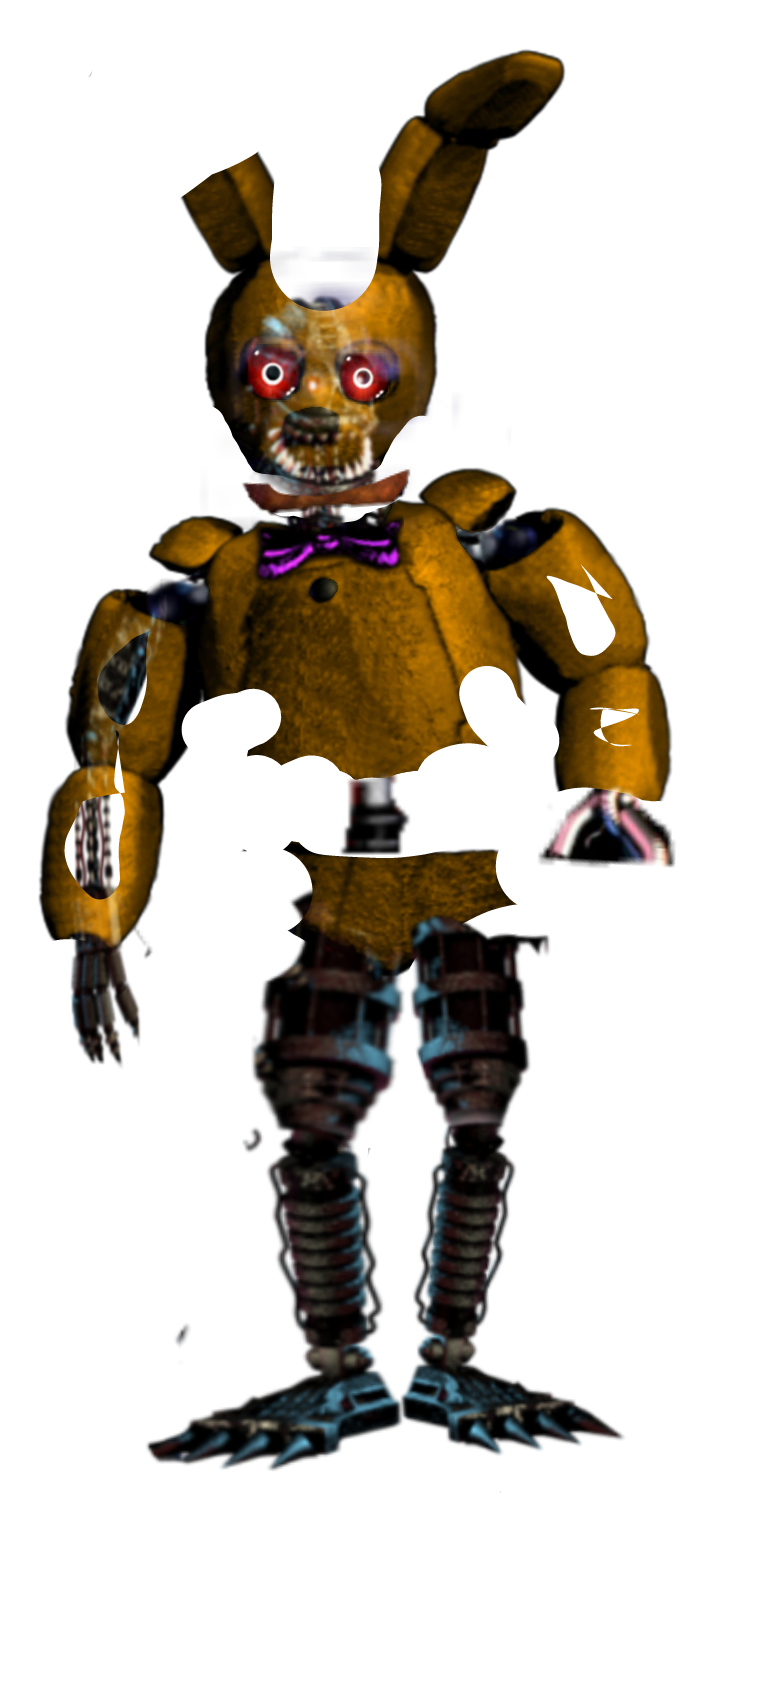 #nightmare springbonnie